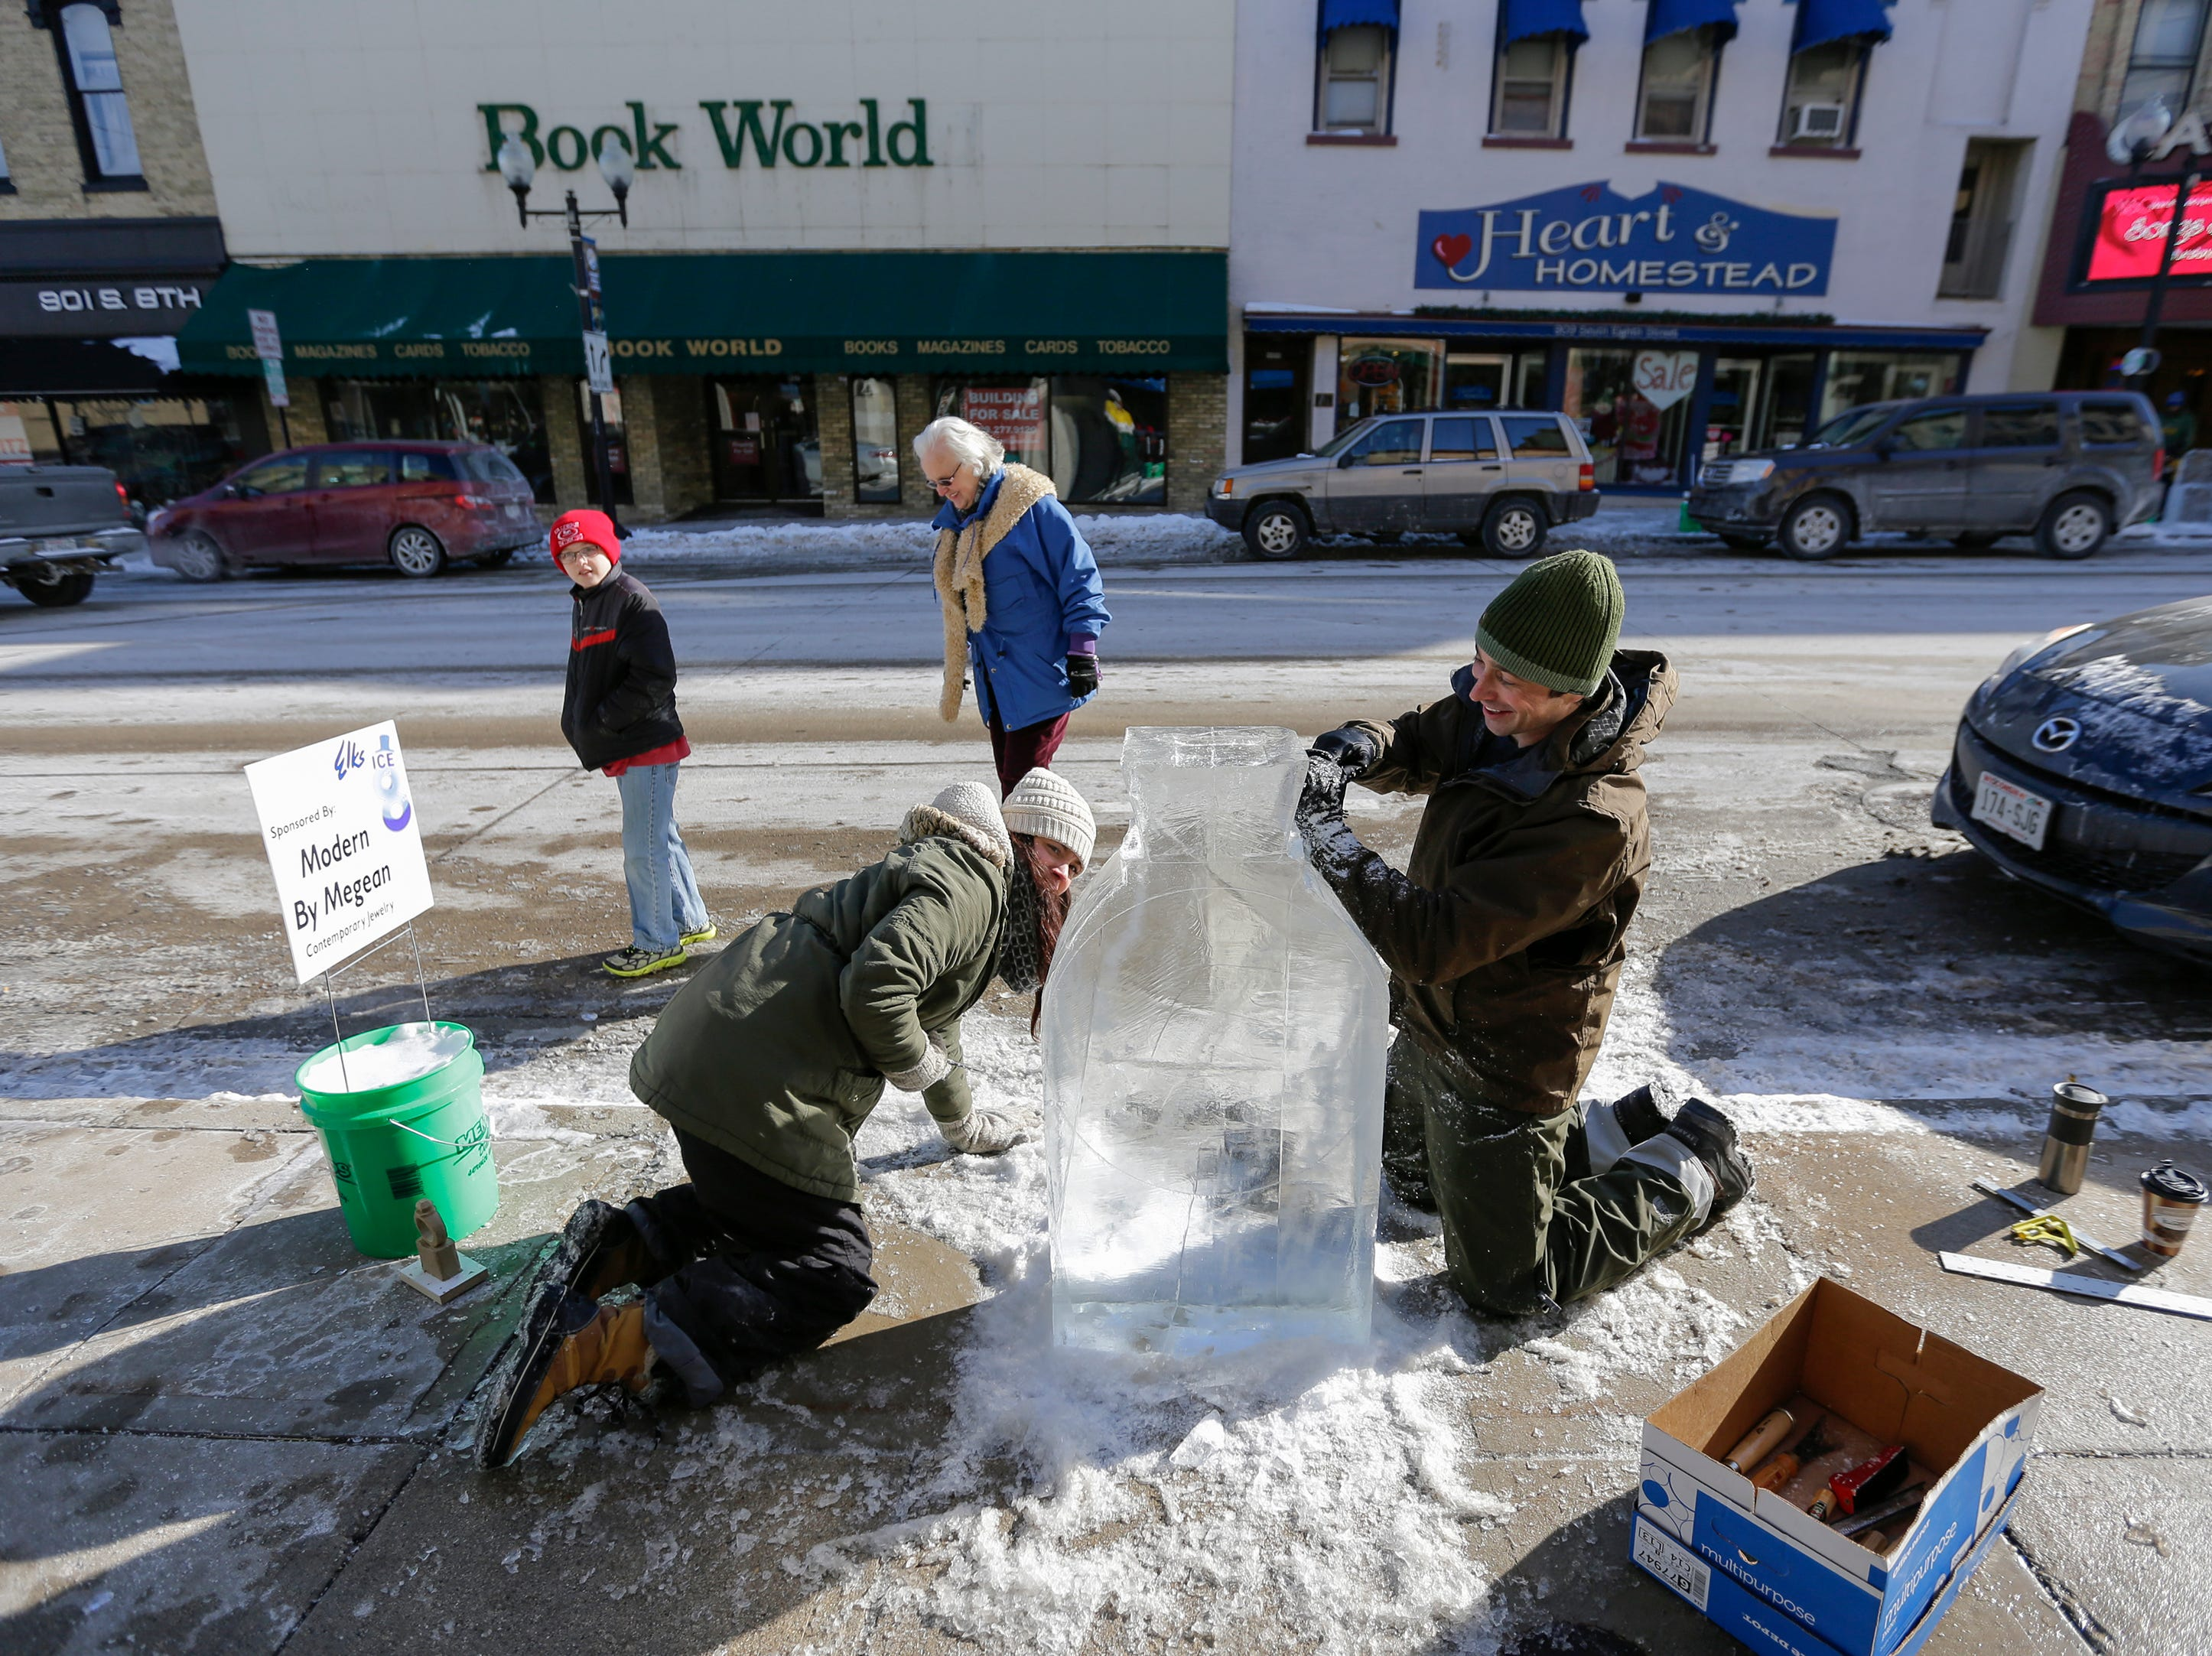 Samantha Deeley, front left, and Patrick Burke work on an ice carving of a diamond ring outside Modern by Megean as people walk down 8th Street watching sculptors work during the Ice on 8th winter festival Saturday, Feb. 10, 2018, in Manitowoc, Wis. Josh Clark/USA TODAY NETWORK-Wisconsin